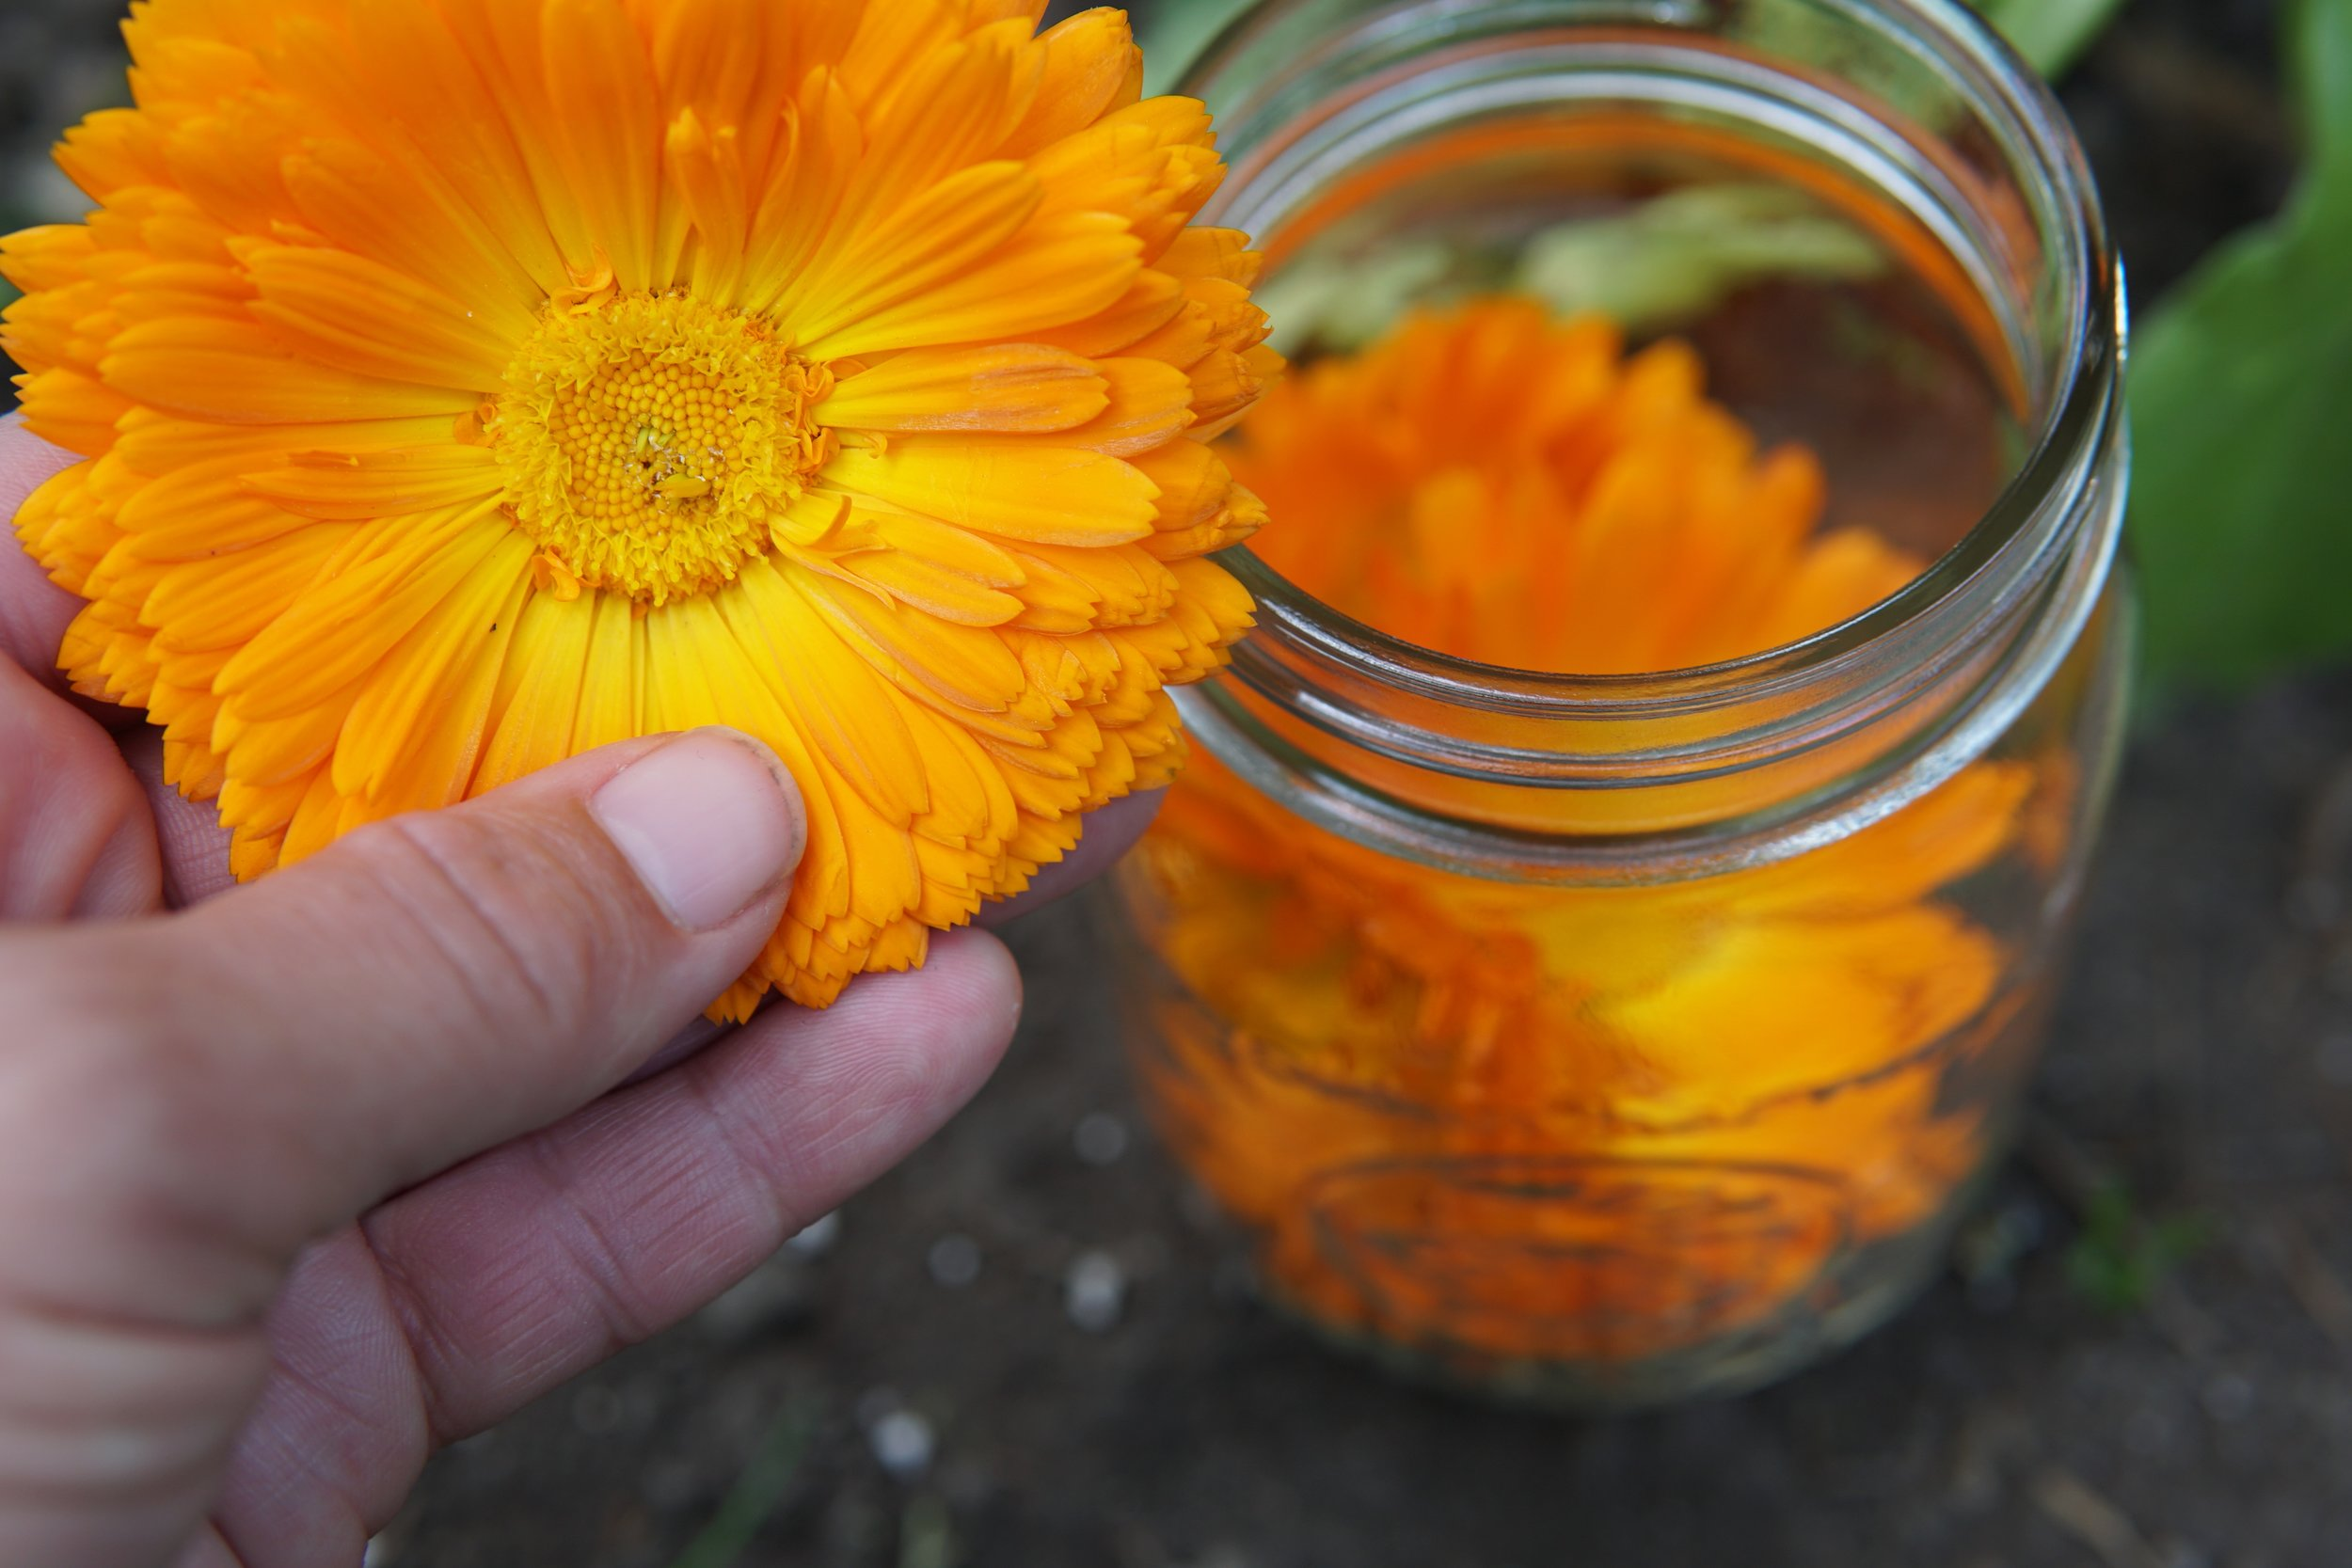 Sunny, sticky Calendula flowers make a wonderful oil for skin care.